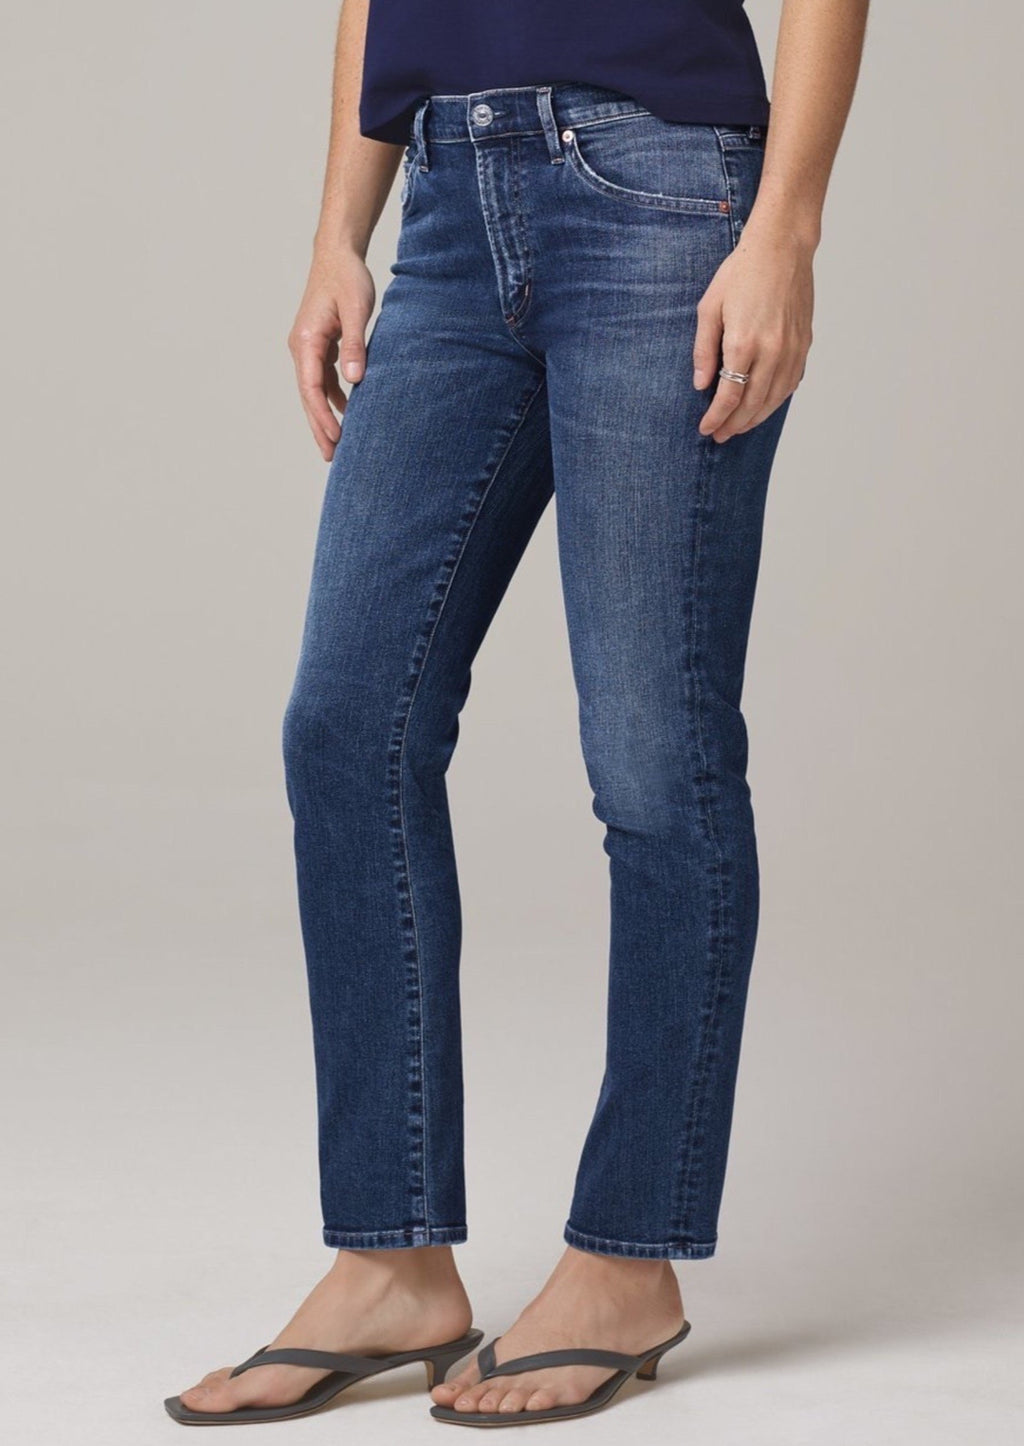 Citizen's of Humanity Skyla Mid Rise Cigarette Jean